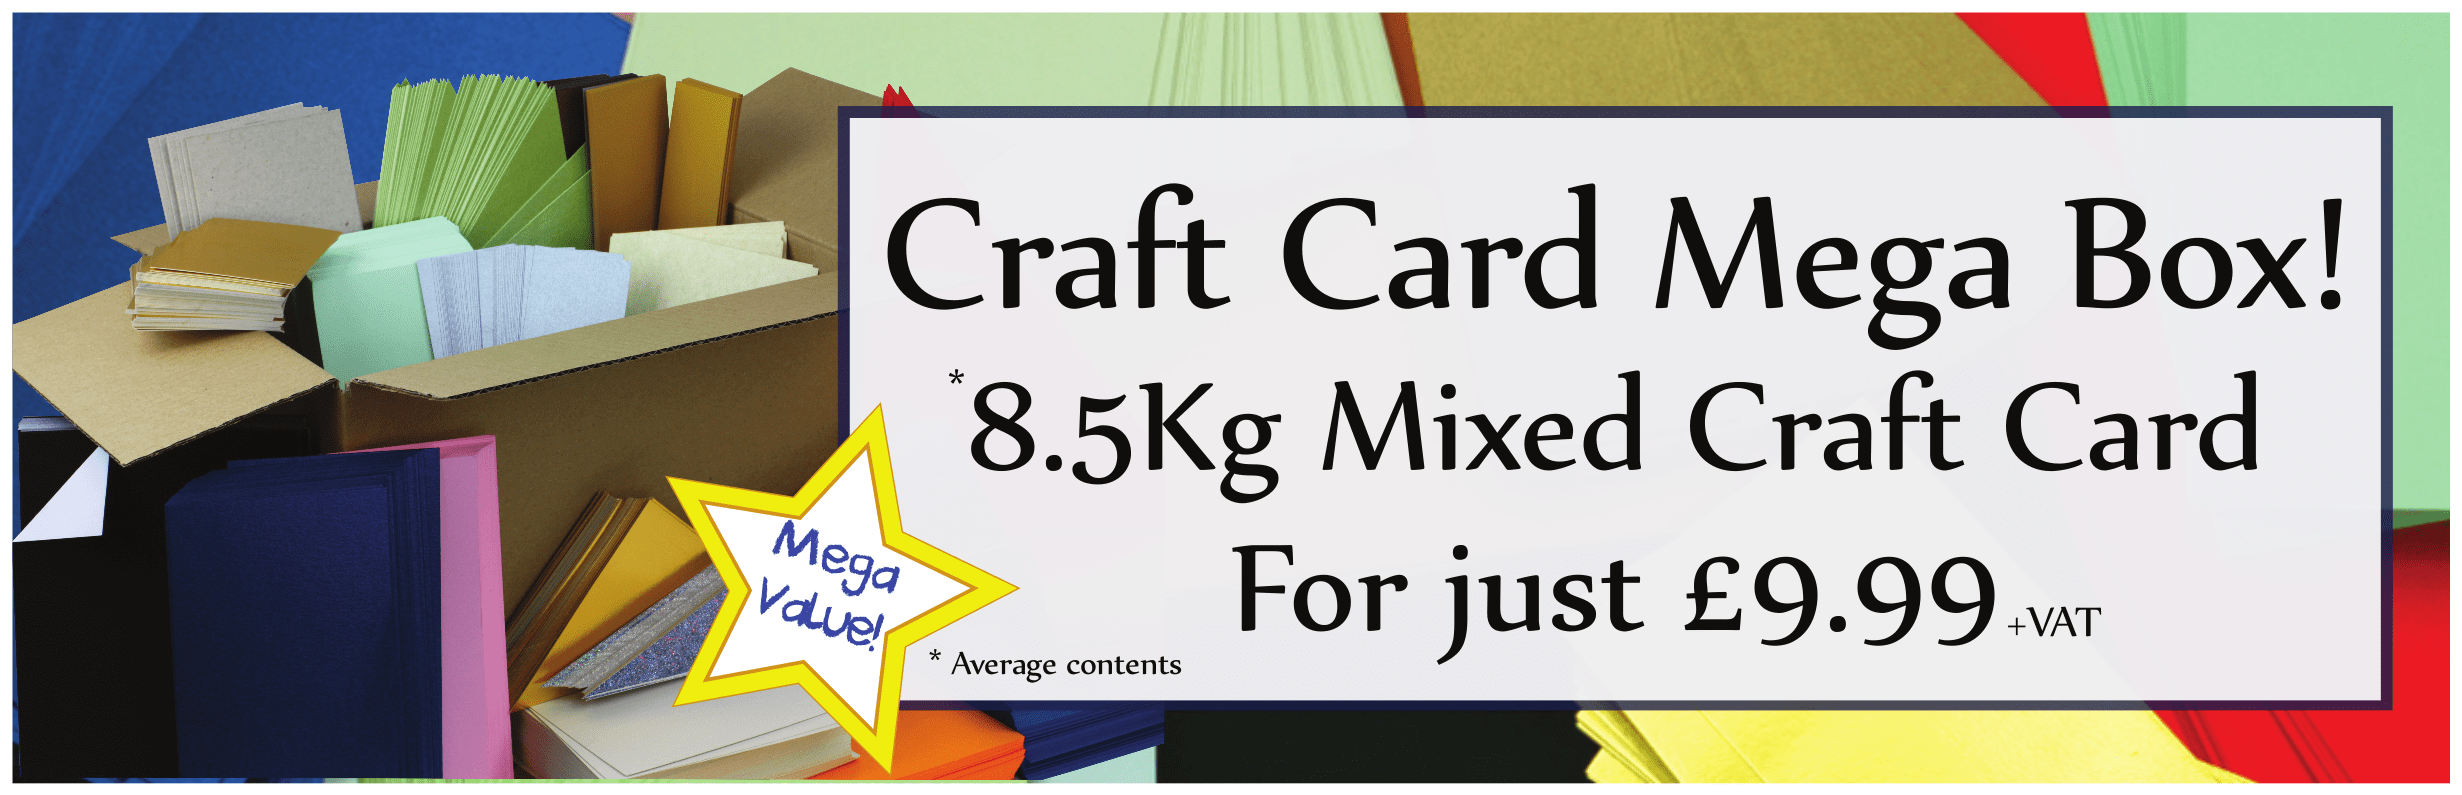 Mega Box of Craft Card